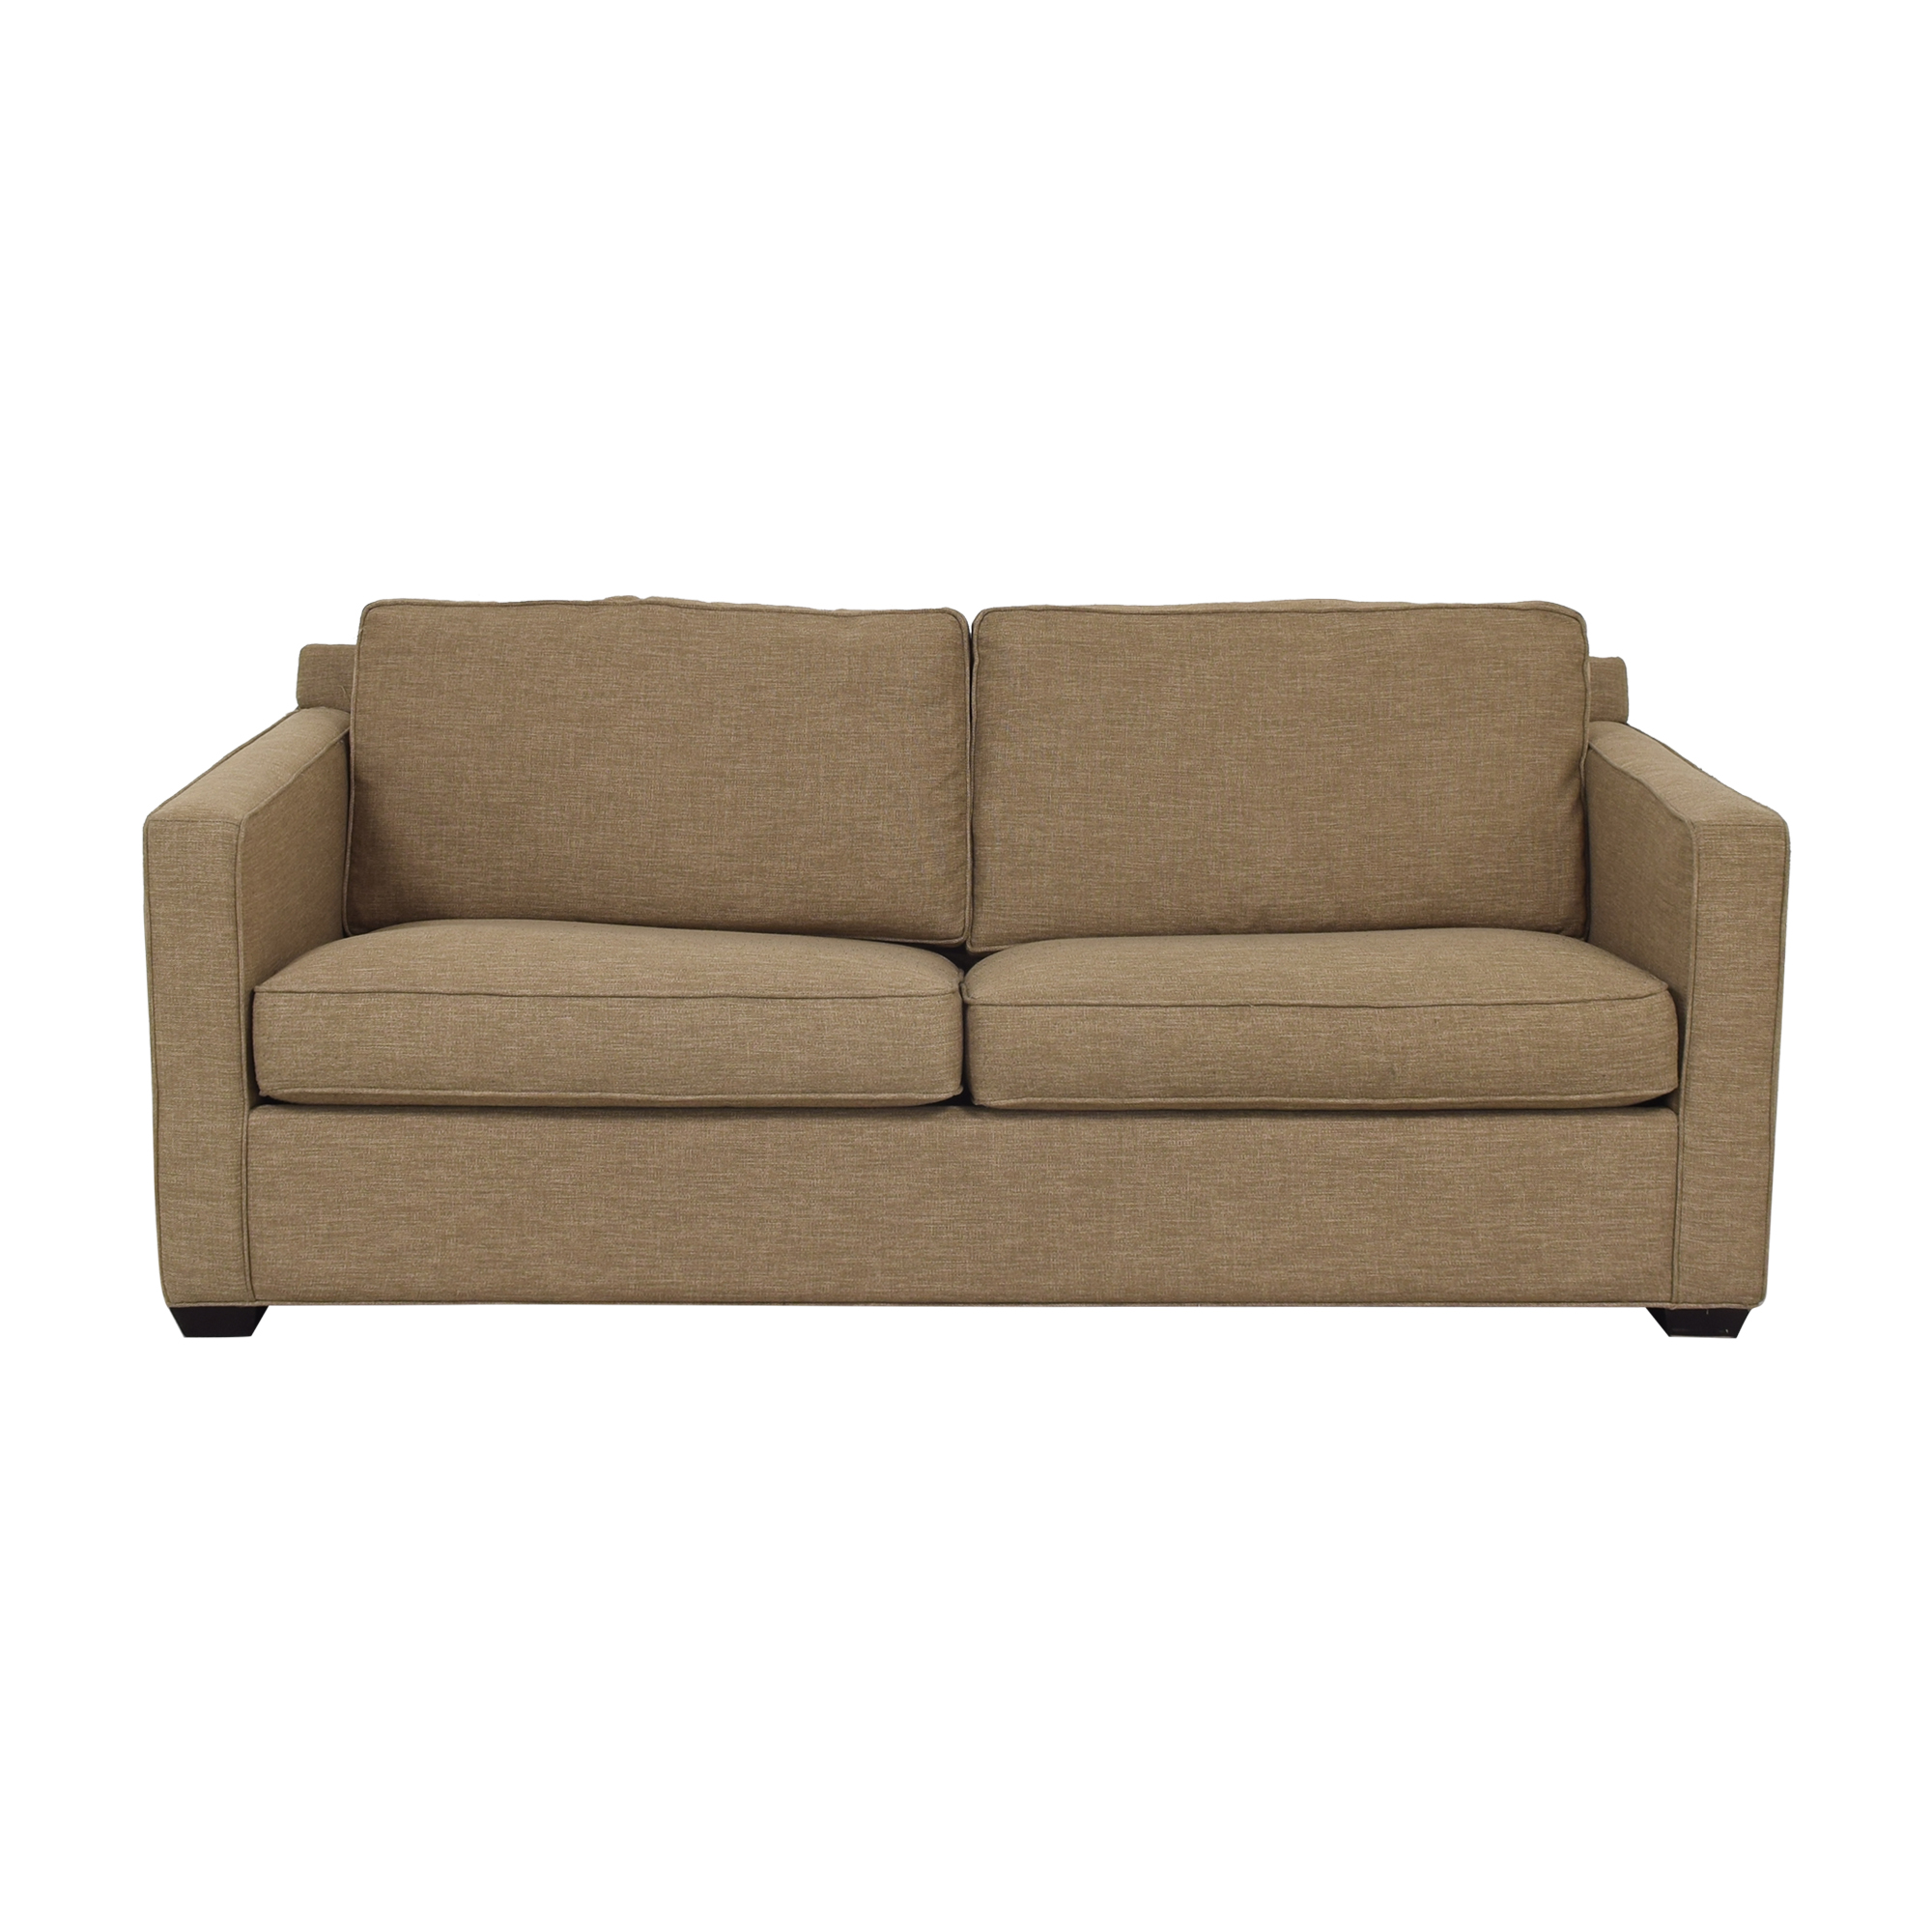 buy Crate & Barrel Axis II 2-Seat Queen Sleeper Sofa Crate & Barrel Sofa Beds